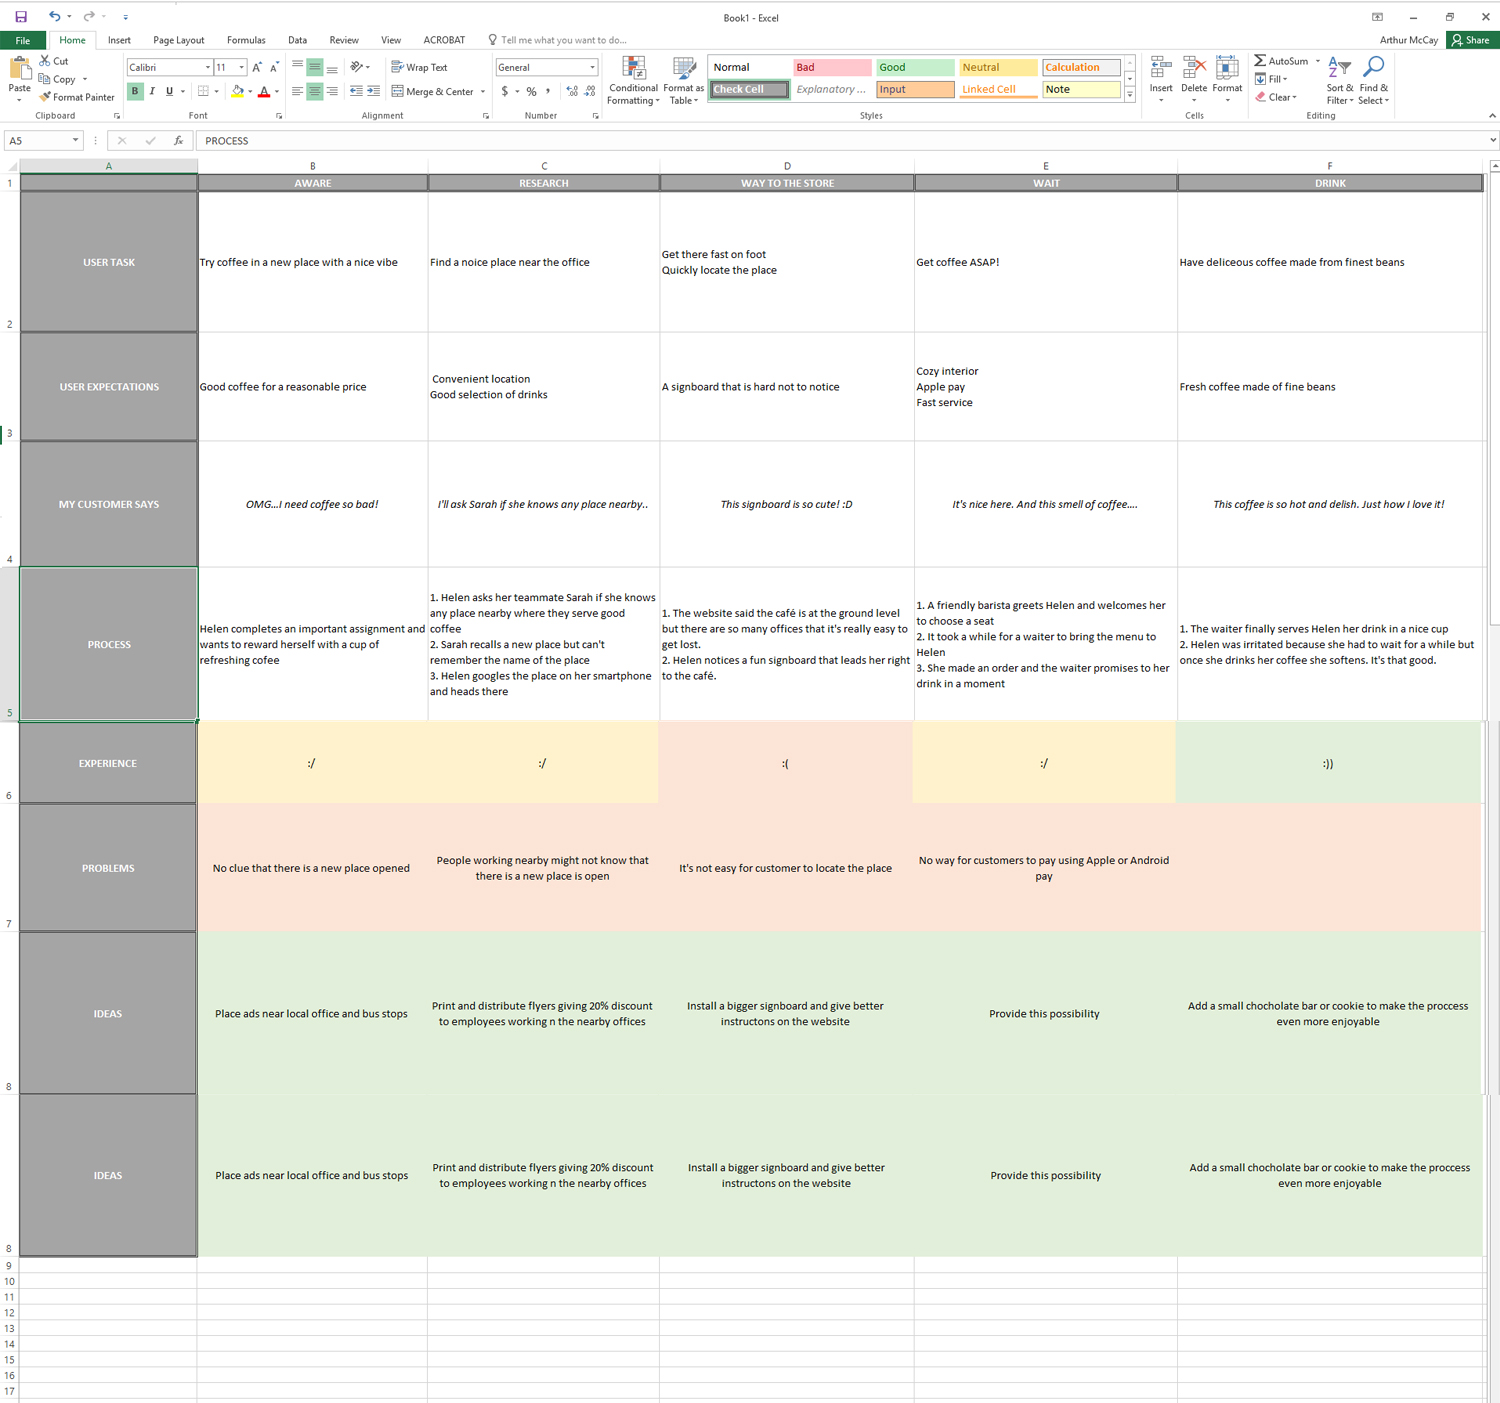 Coffee Journey Map on a Spreadsheet